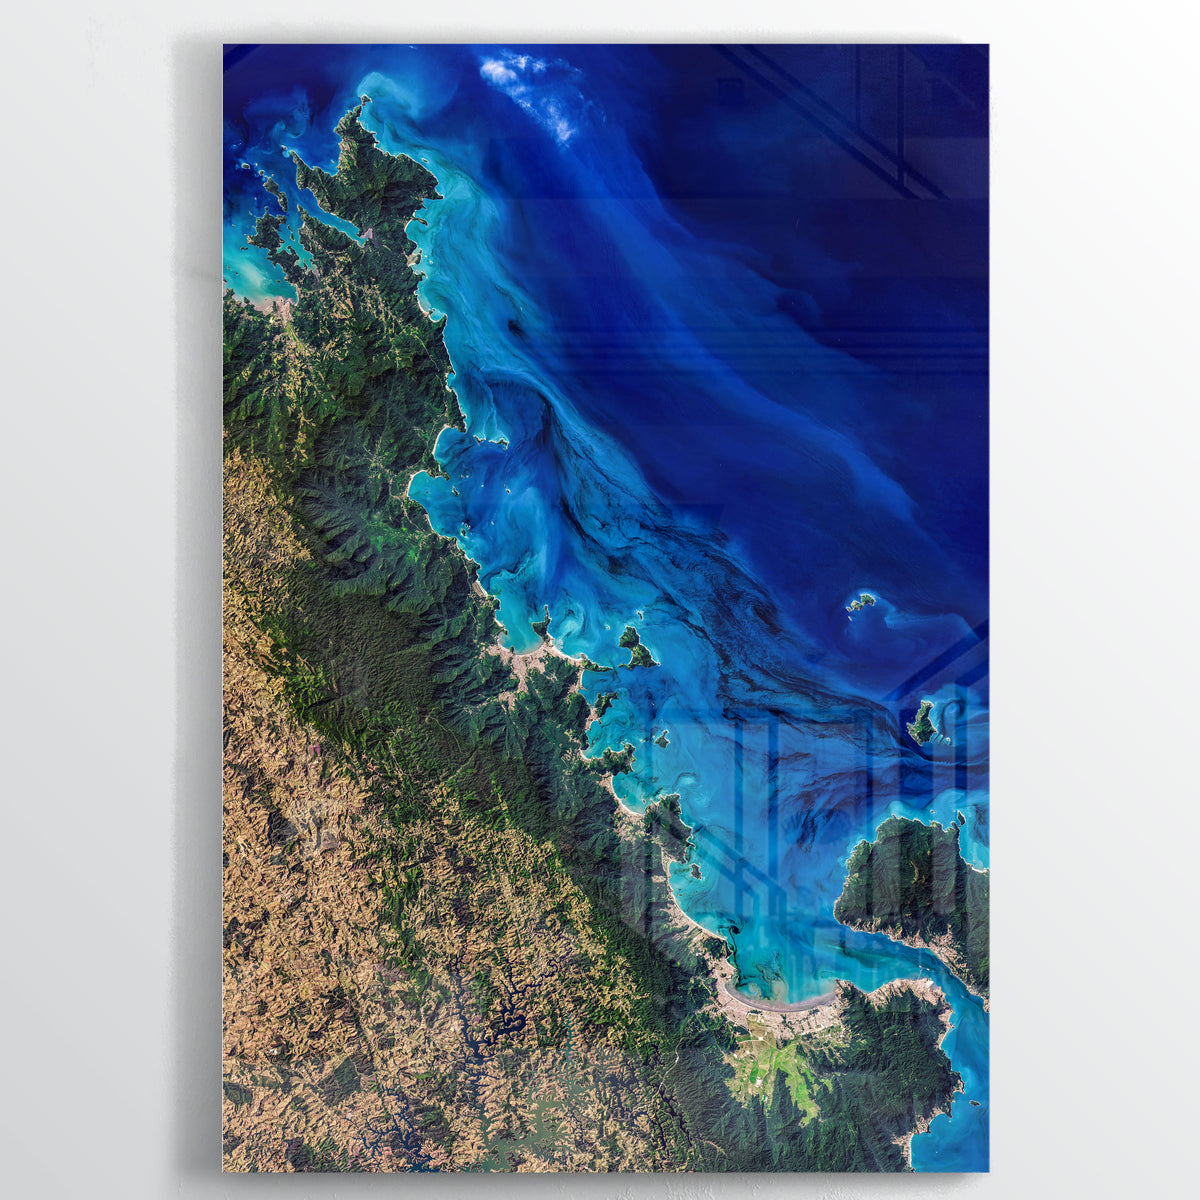 Coast of Sao Paulo Earth Photography - Floating Acrylic Art - Point Two Design